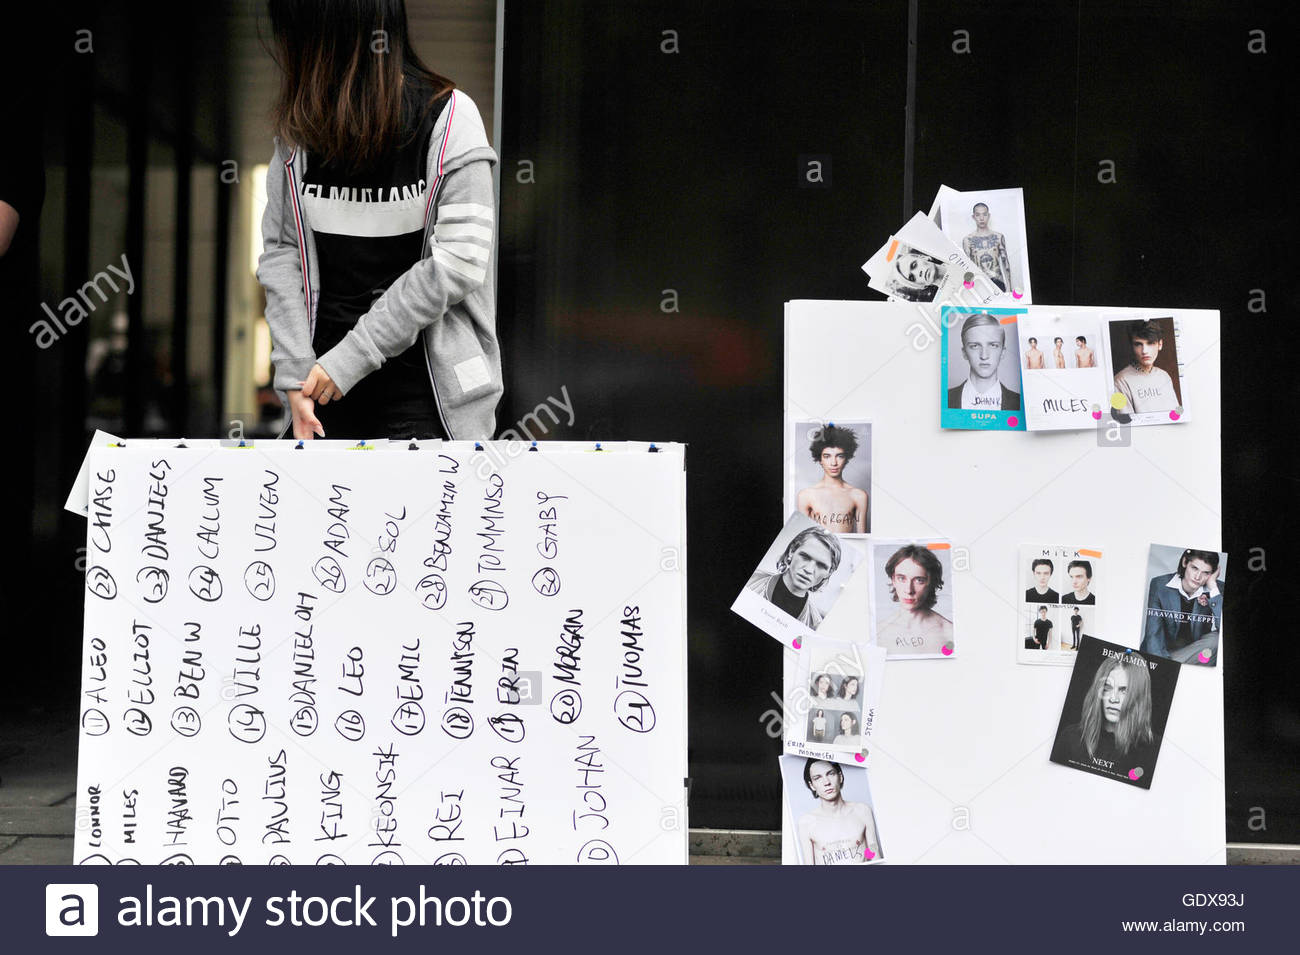 Models Head-shots on a fashion board at 180 Strand, London, Fashion Venue for LCM. - Stock Image